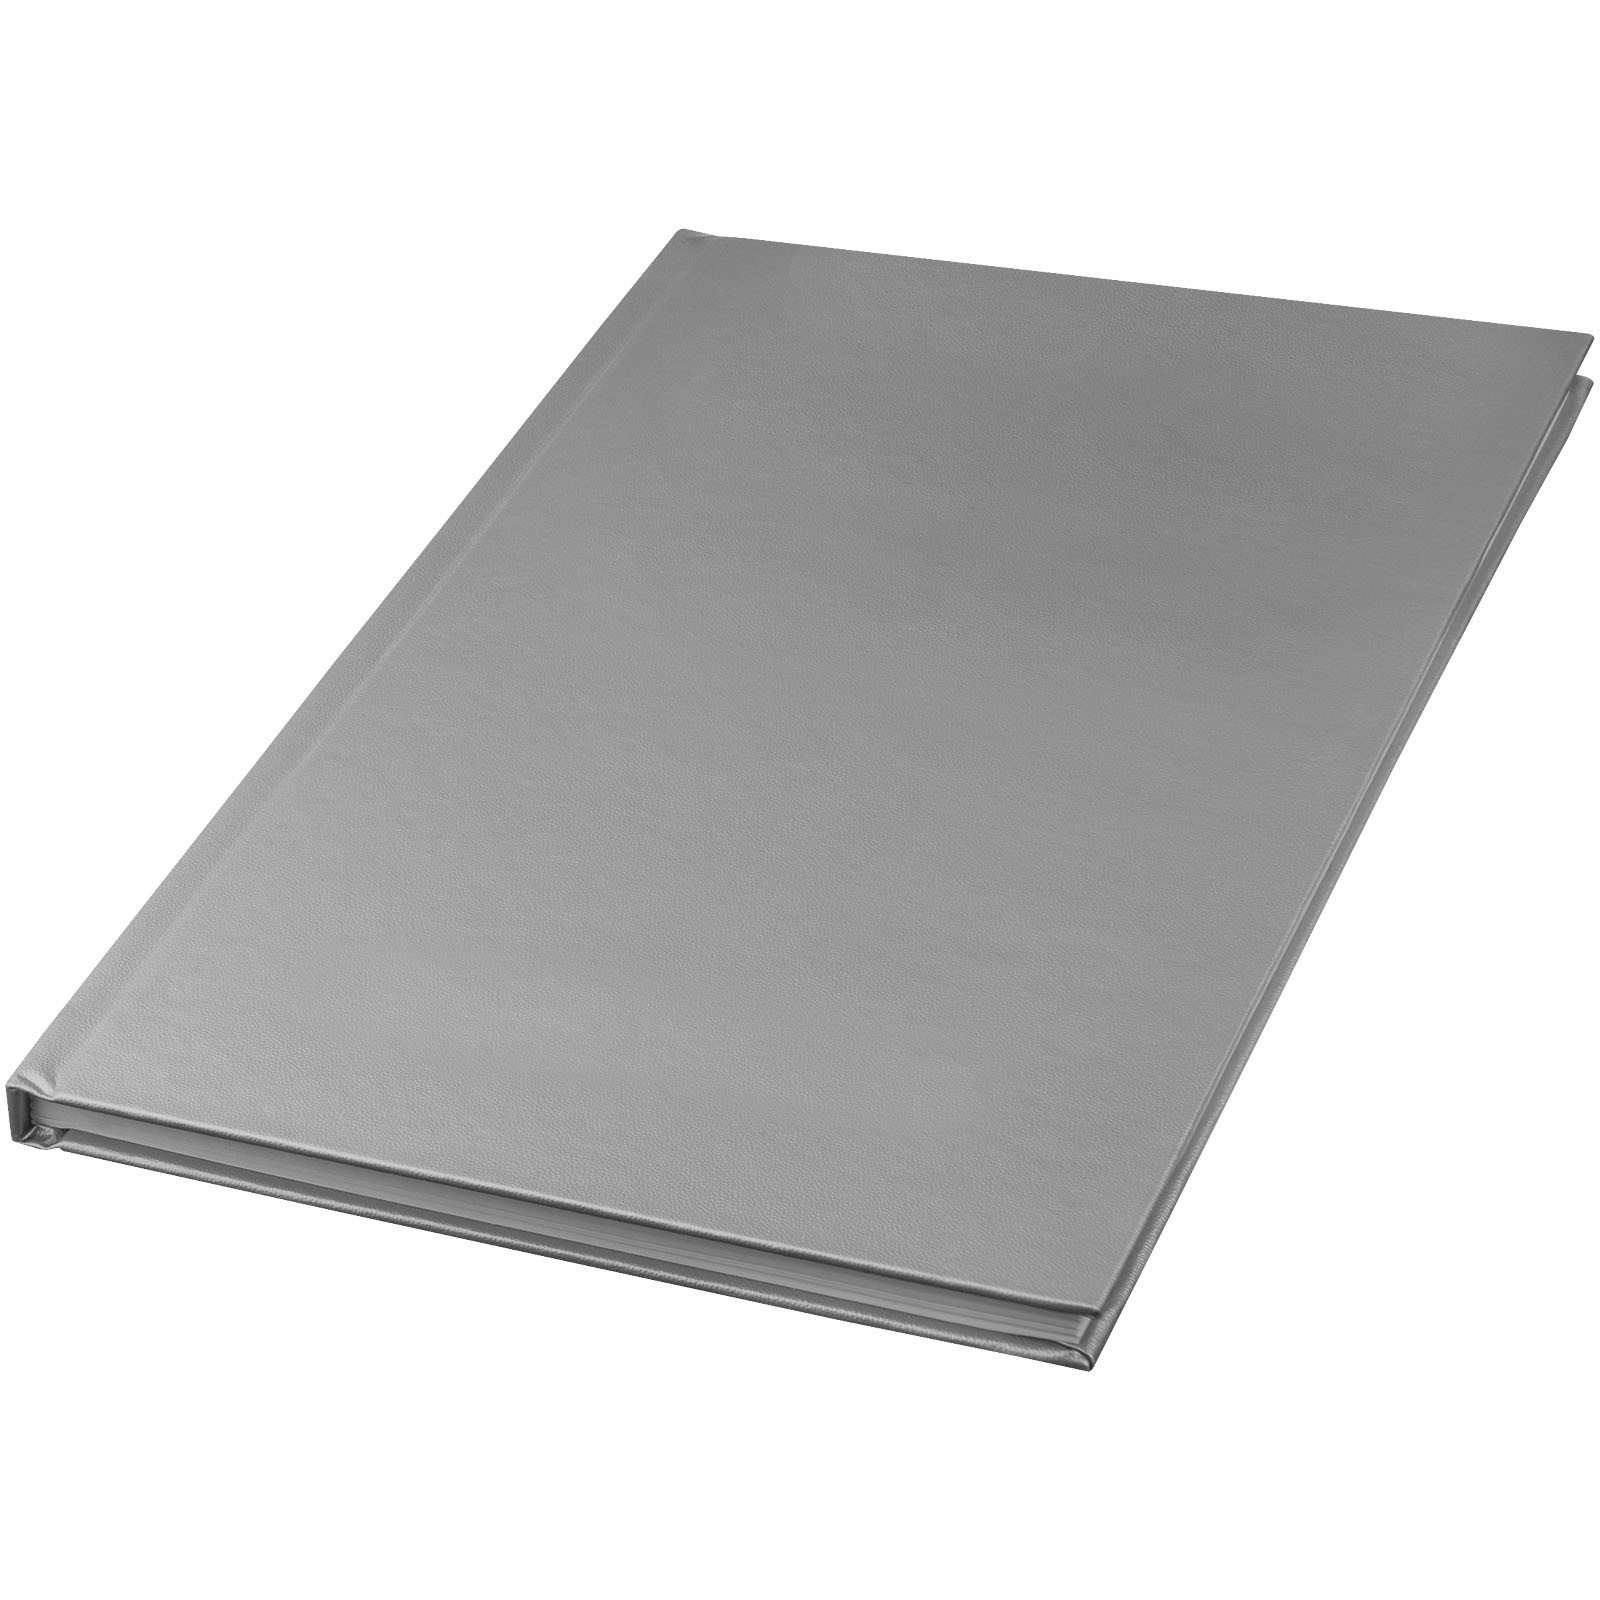 Gosling A5 hard cover notebook - Silver